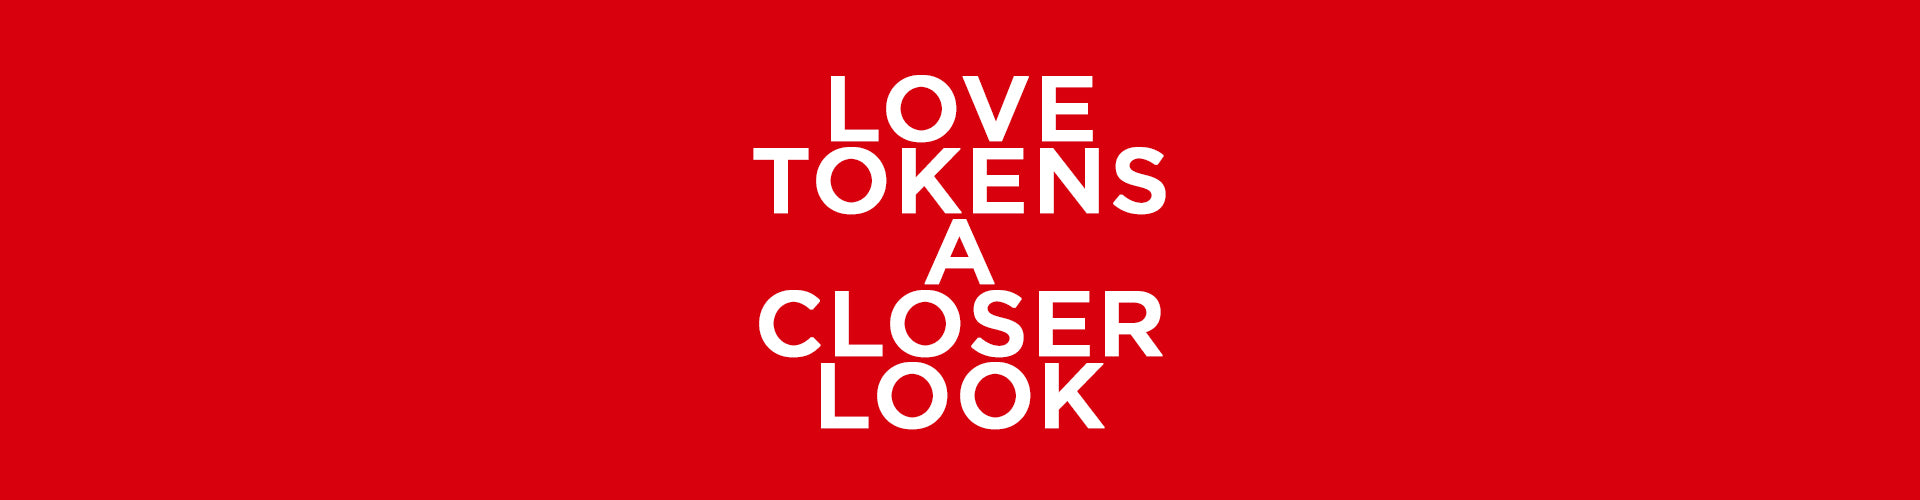 Love Tokens: A Closer Look